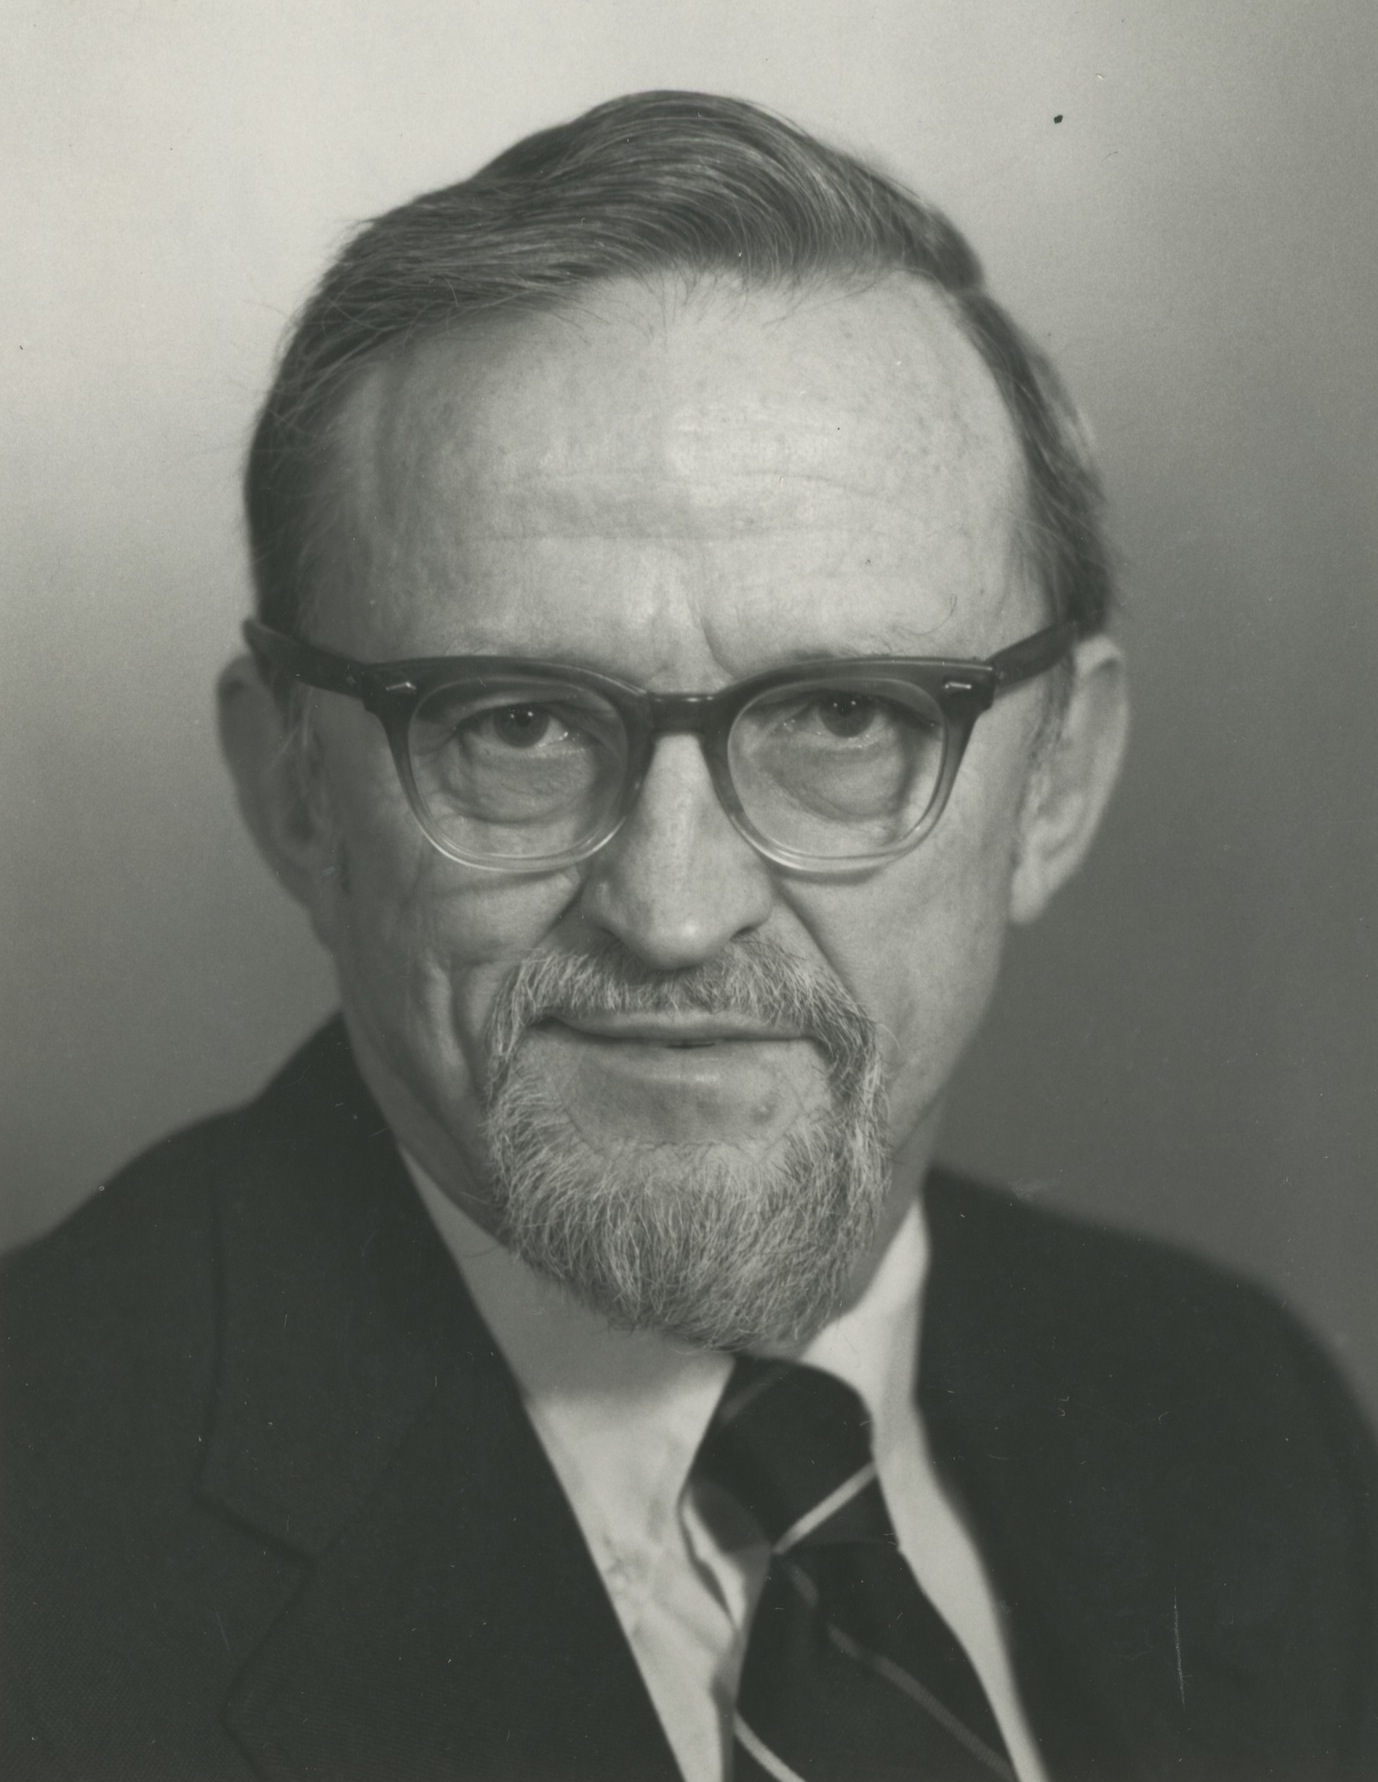 University of Michigan Professor Philip E. Converse, October 1982 image